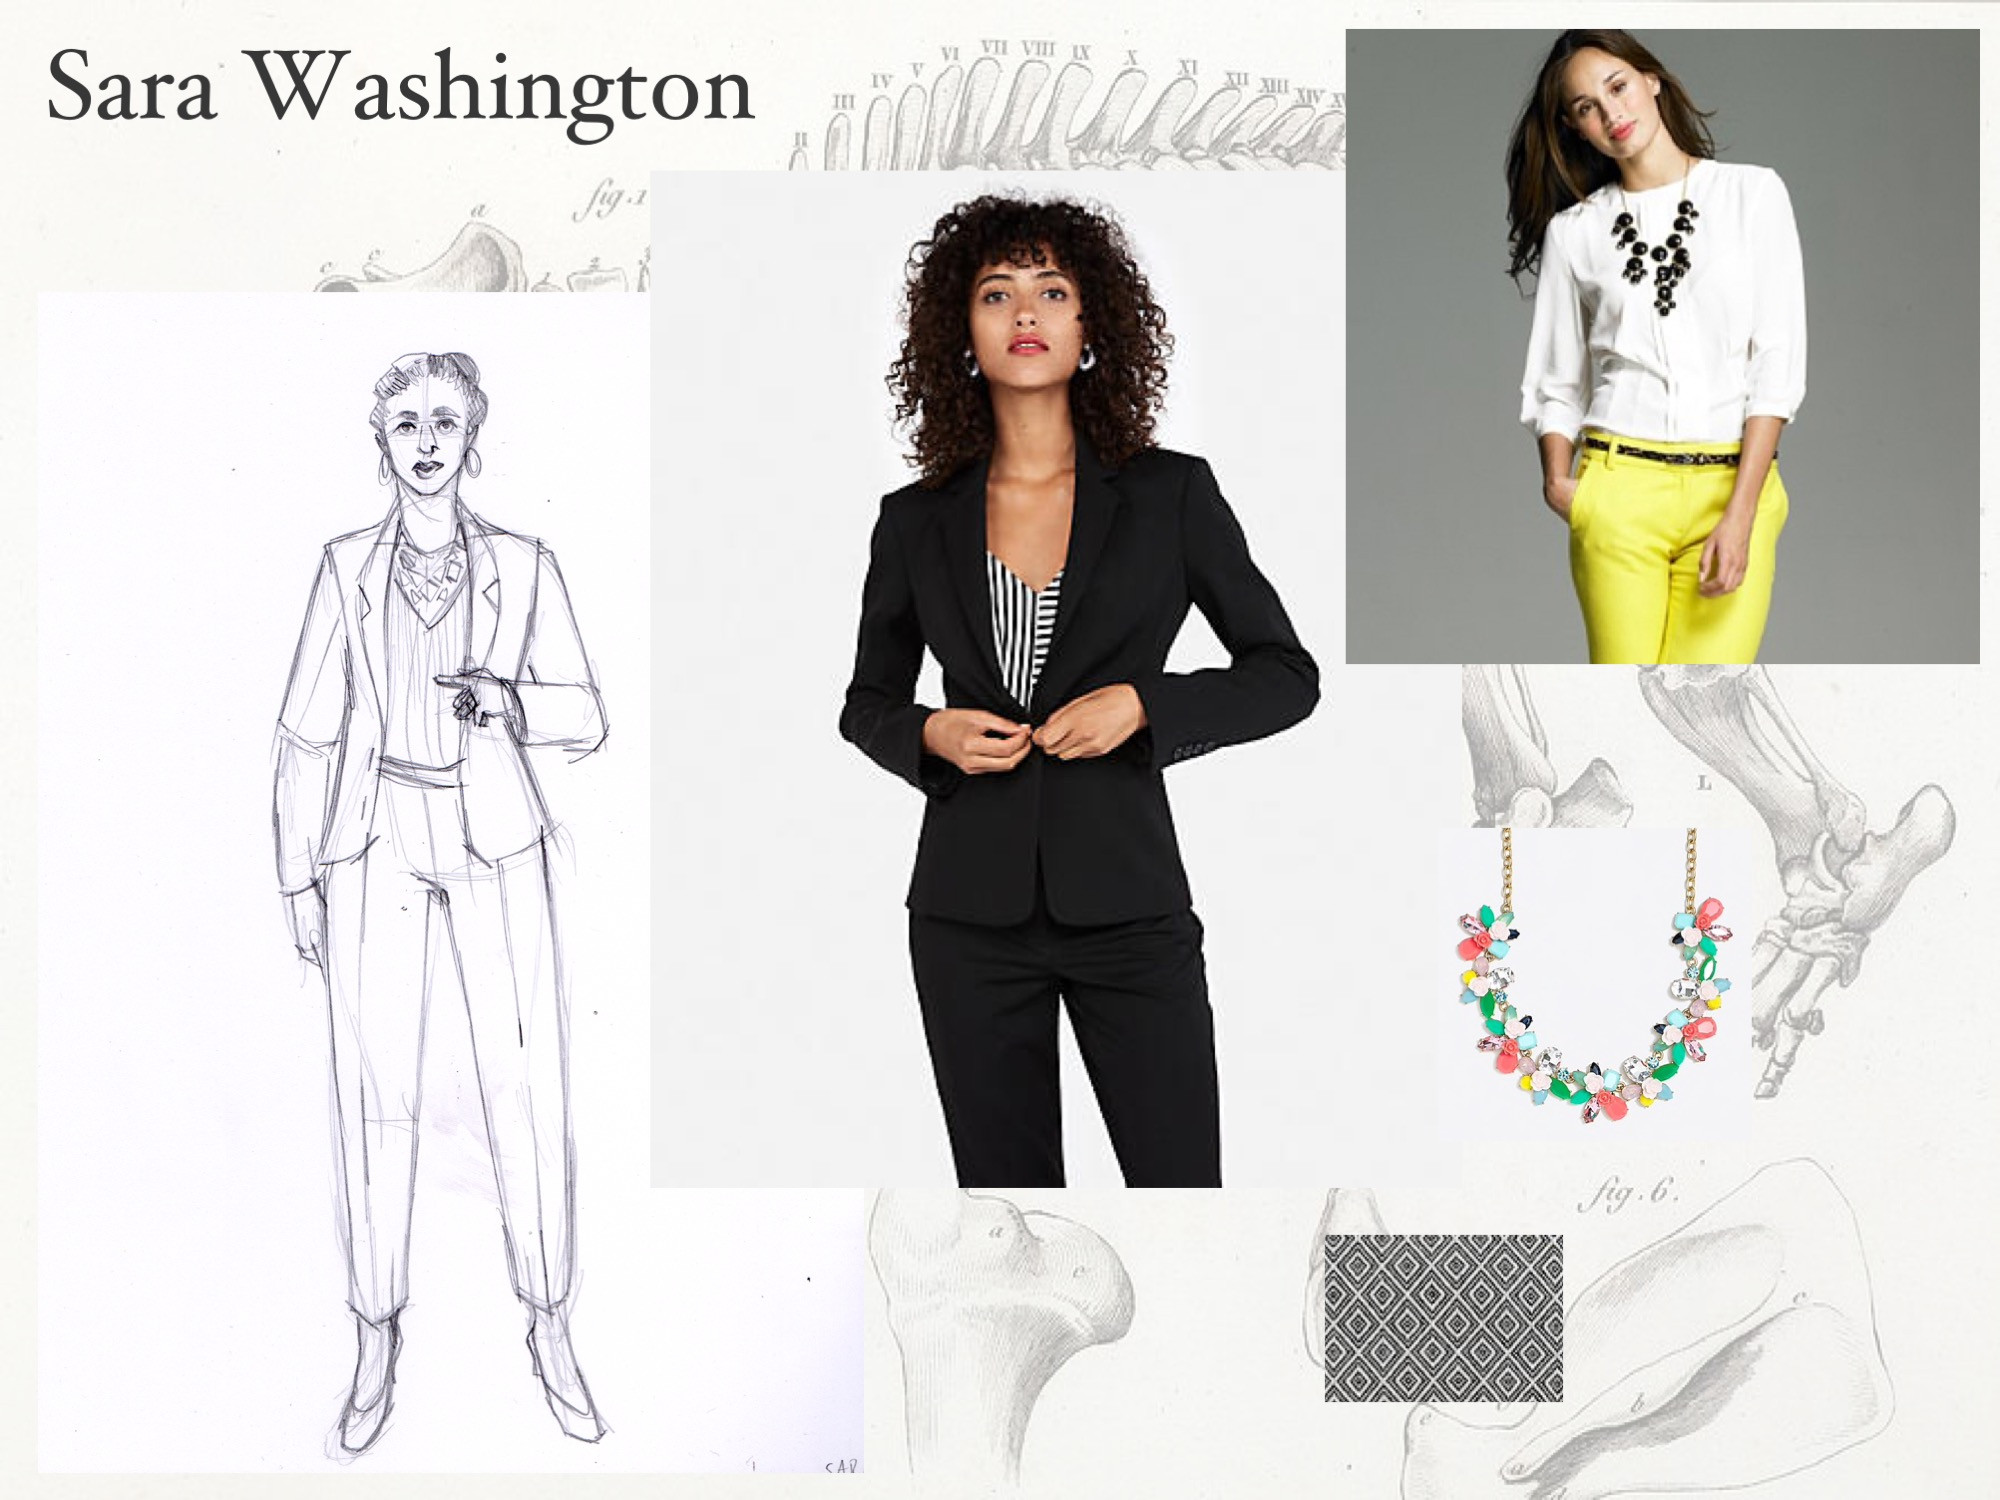 Sara Washington: reference. Images taken from the 2007-2008 J/Crew catalog and other fashions from the time period. She's an academic through and through, and presents sharper and harder than she actually is.